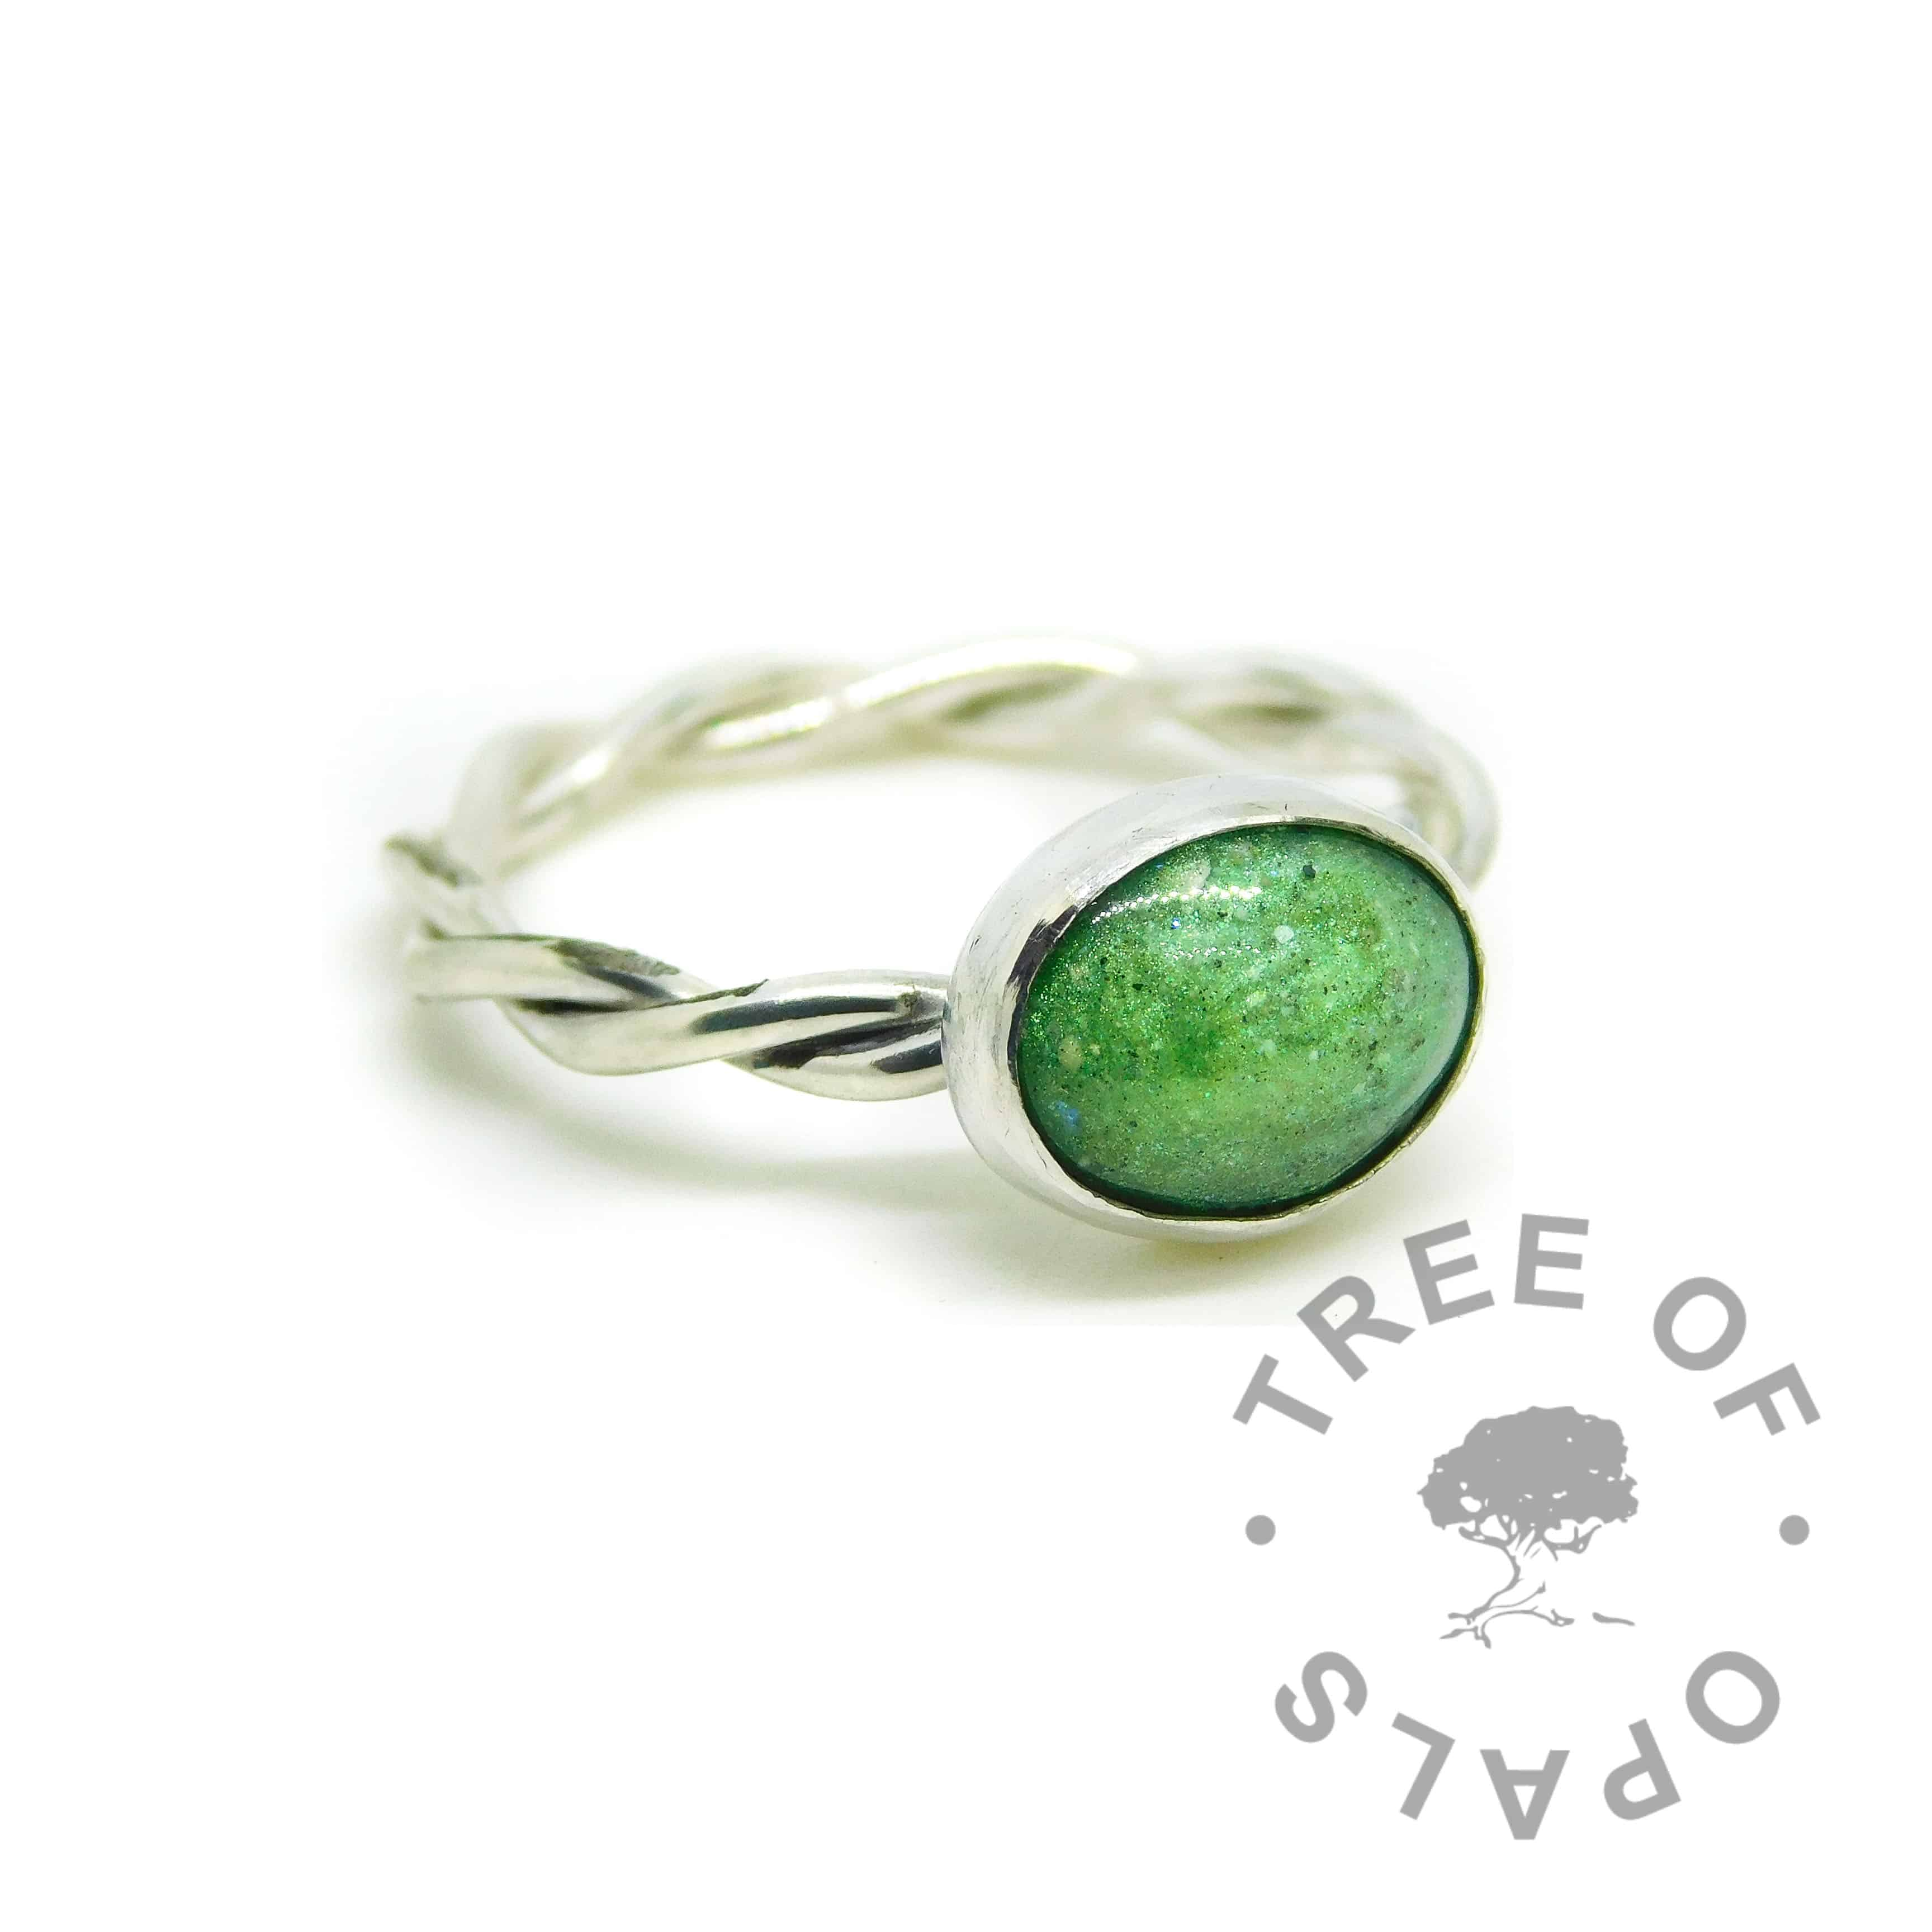 basilisk green resin sparkle mix cremation ashes ring. Twisted band ashes jewellery